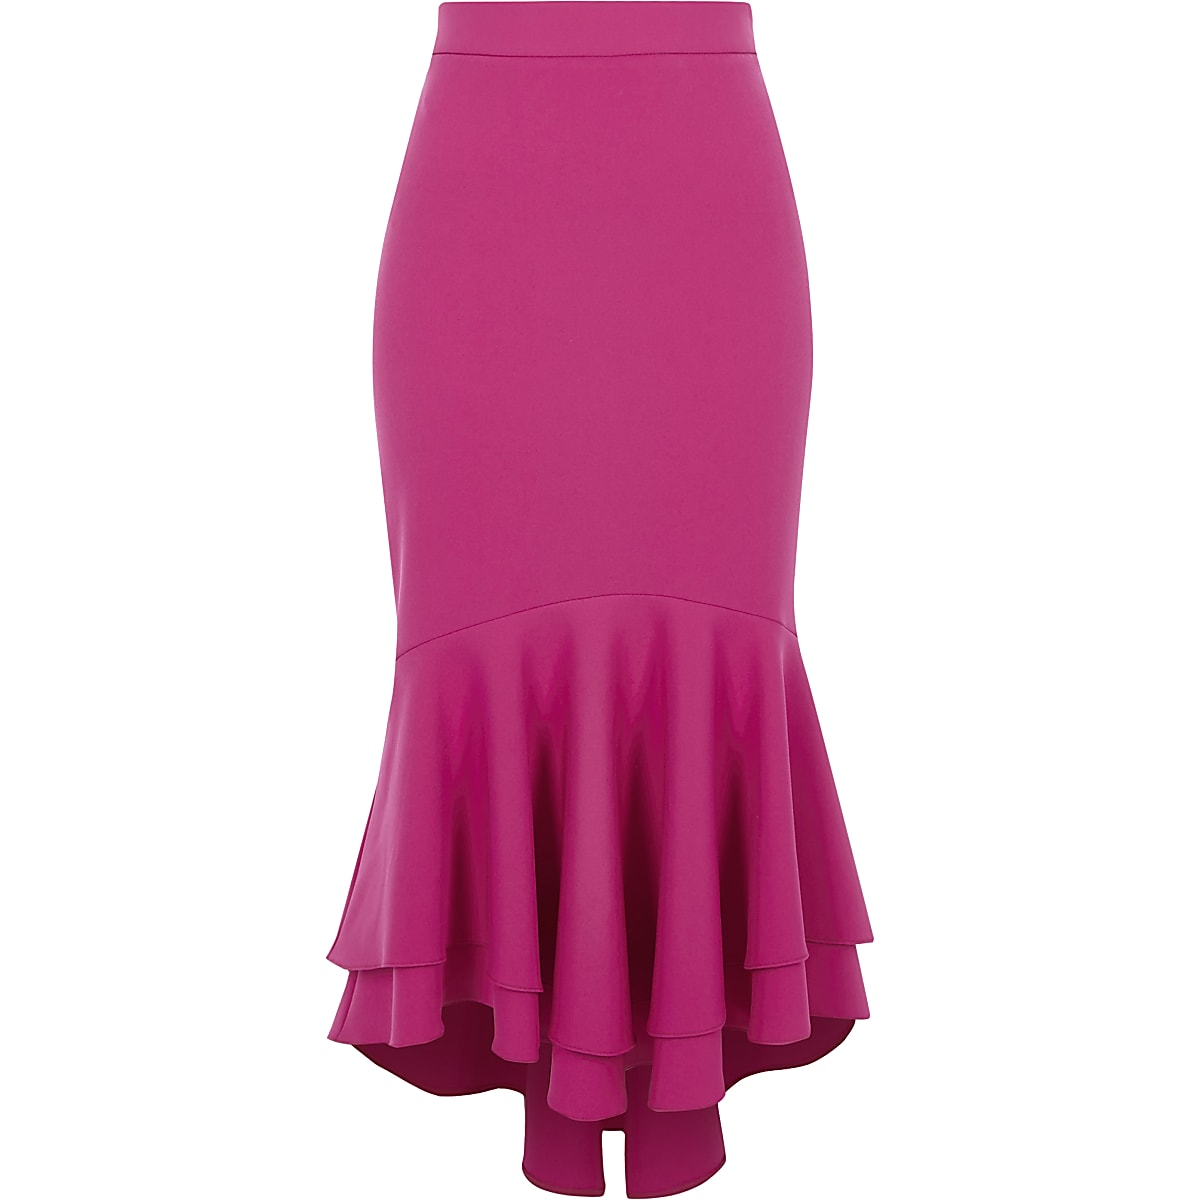 7ee15be7e1 Pink tiered frill fishtail pencil skirt - Midi Skirts - Skirts - women